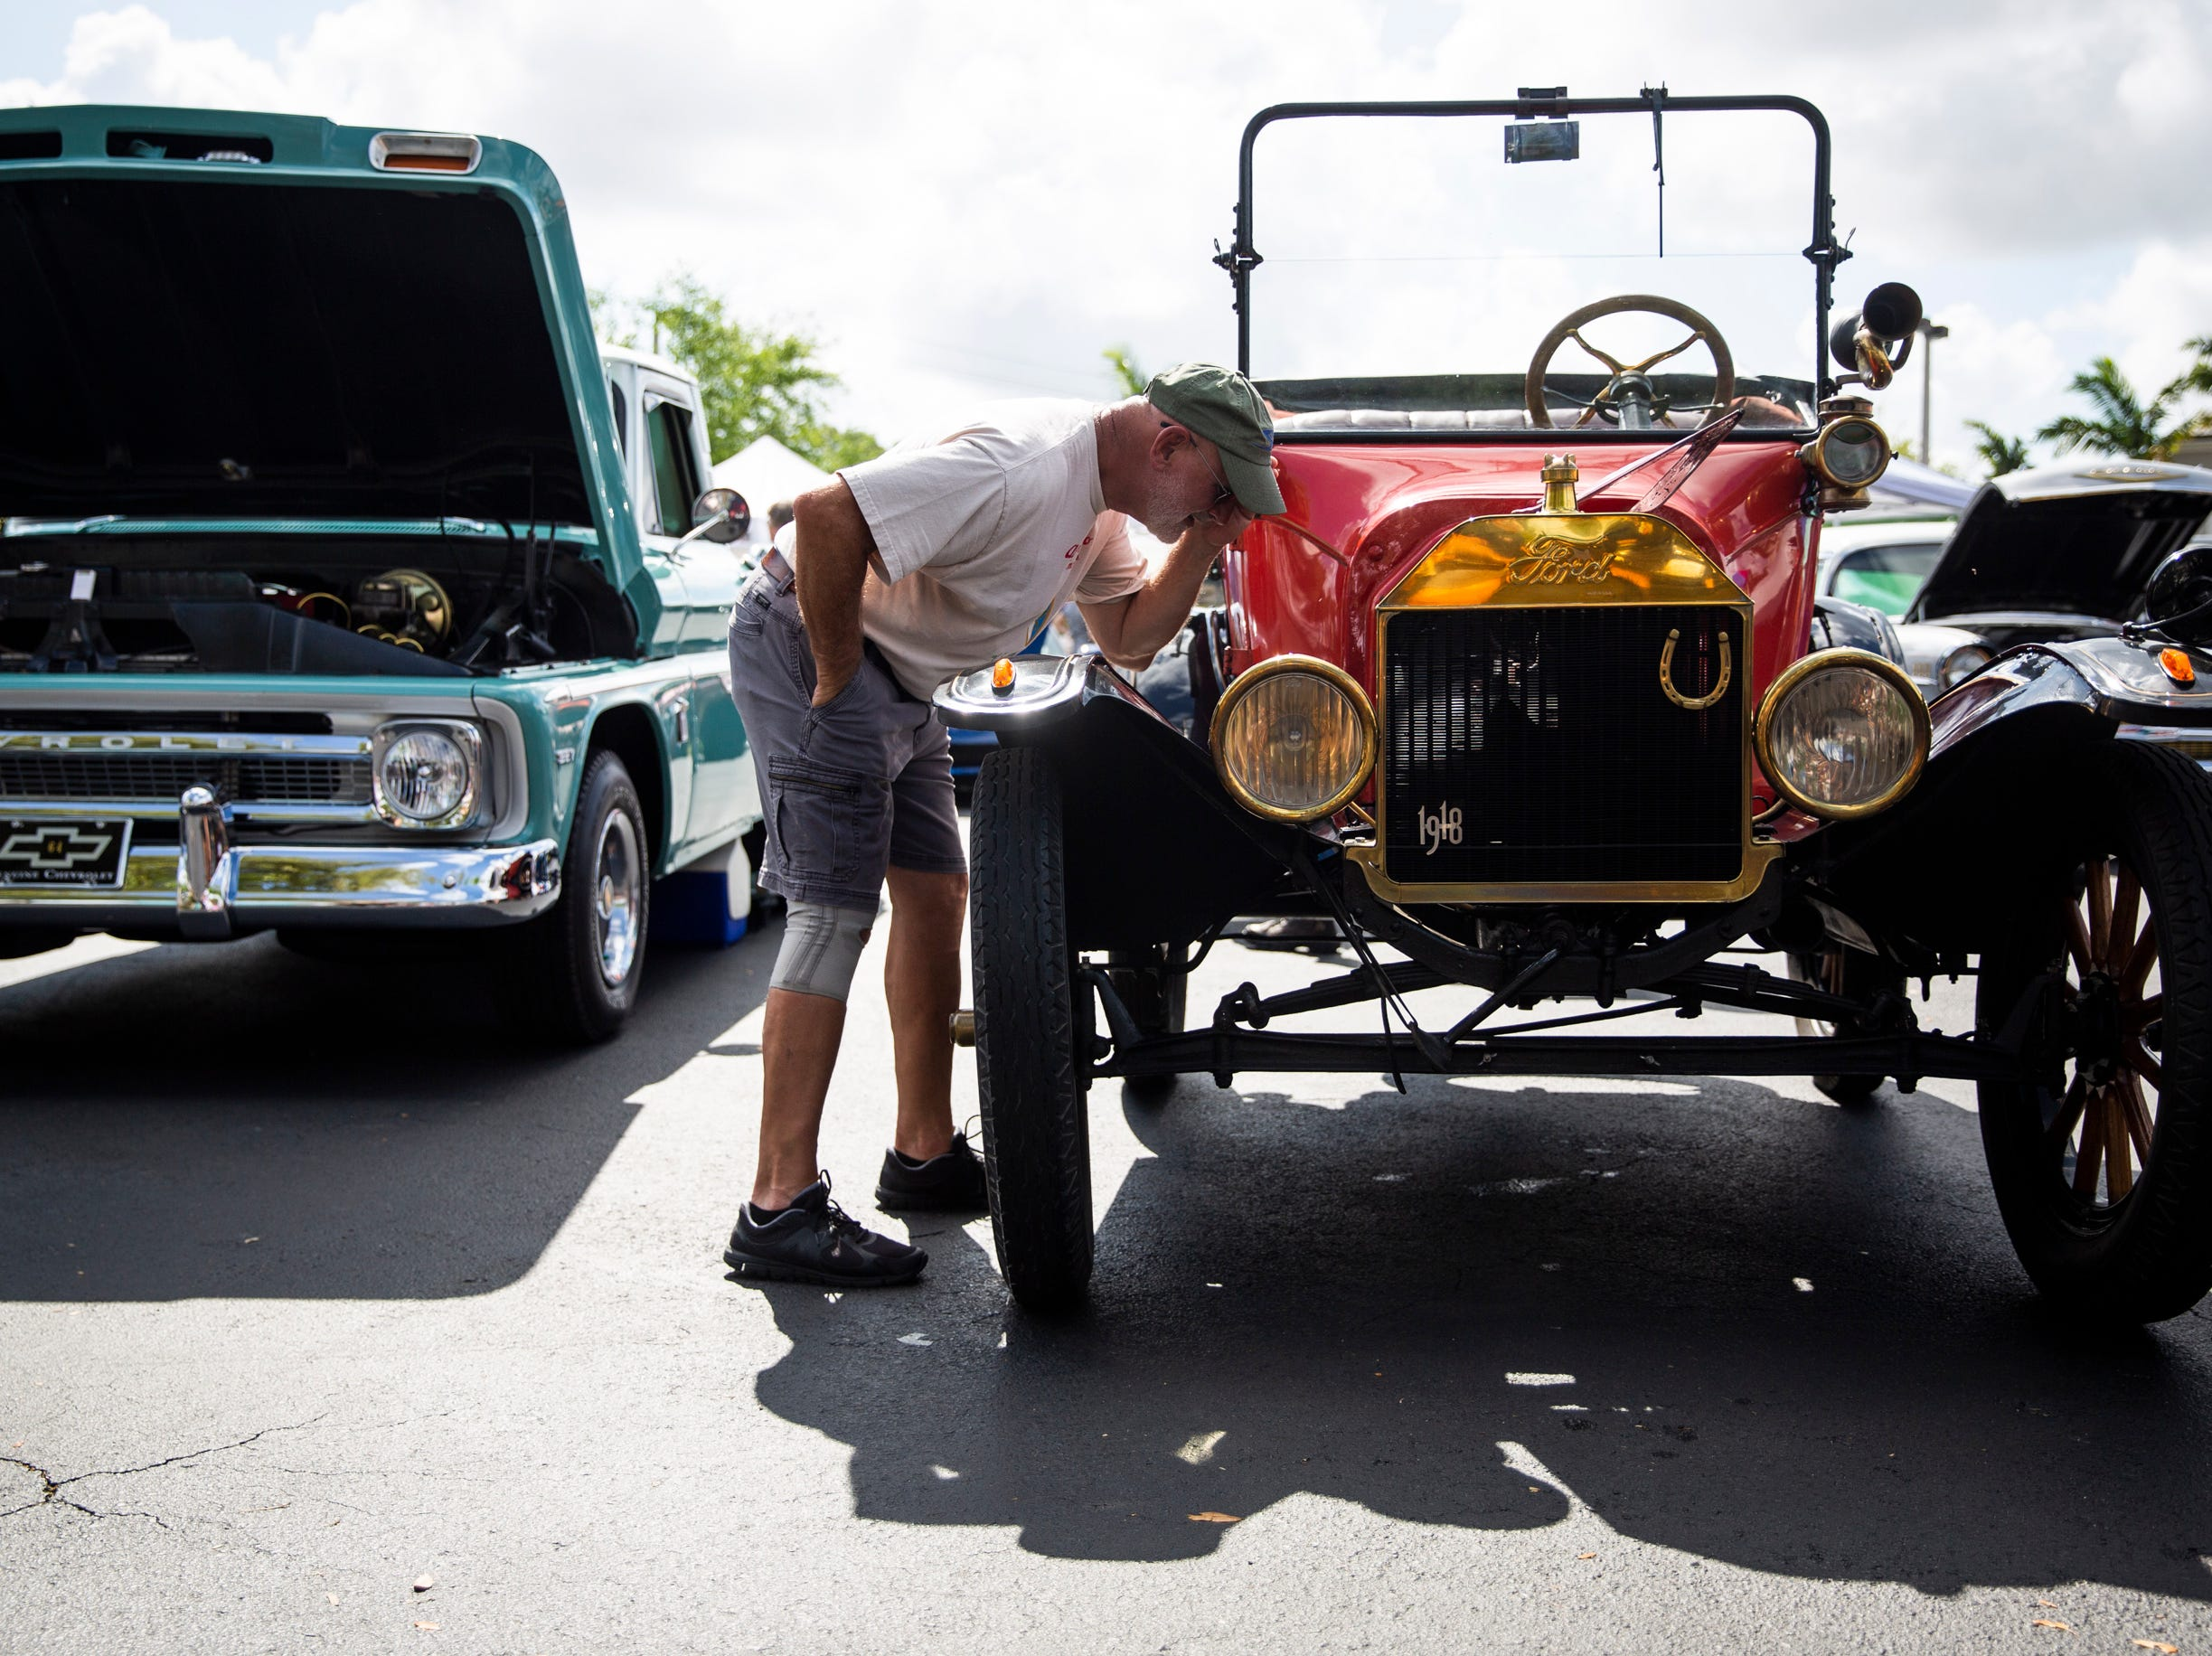 Dave Crowley looks at a 1918 Ford Model T during the West Coast Muscle Car Club's 15th annual car and truck show at the Galleria Shoppes at Vanderbilt in Naples on Sunday, March 10, 2019. Crowley says that he likes this show better than Cars on 5th because it's less crowded and has more variety.